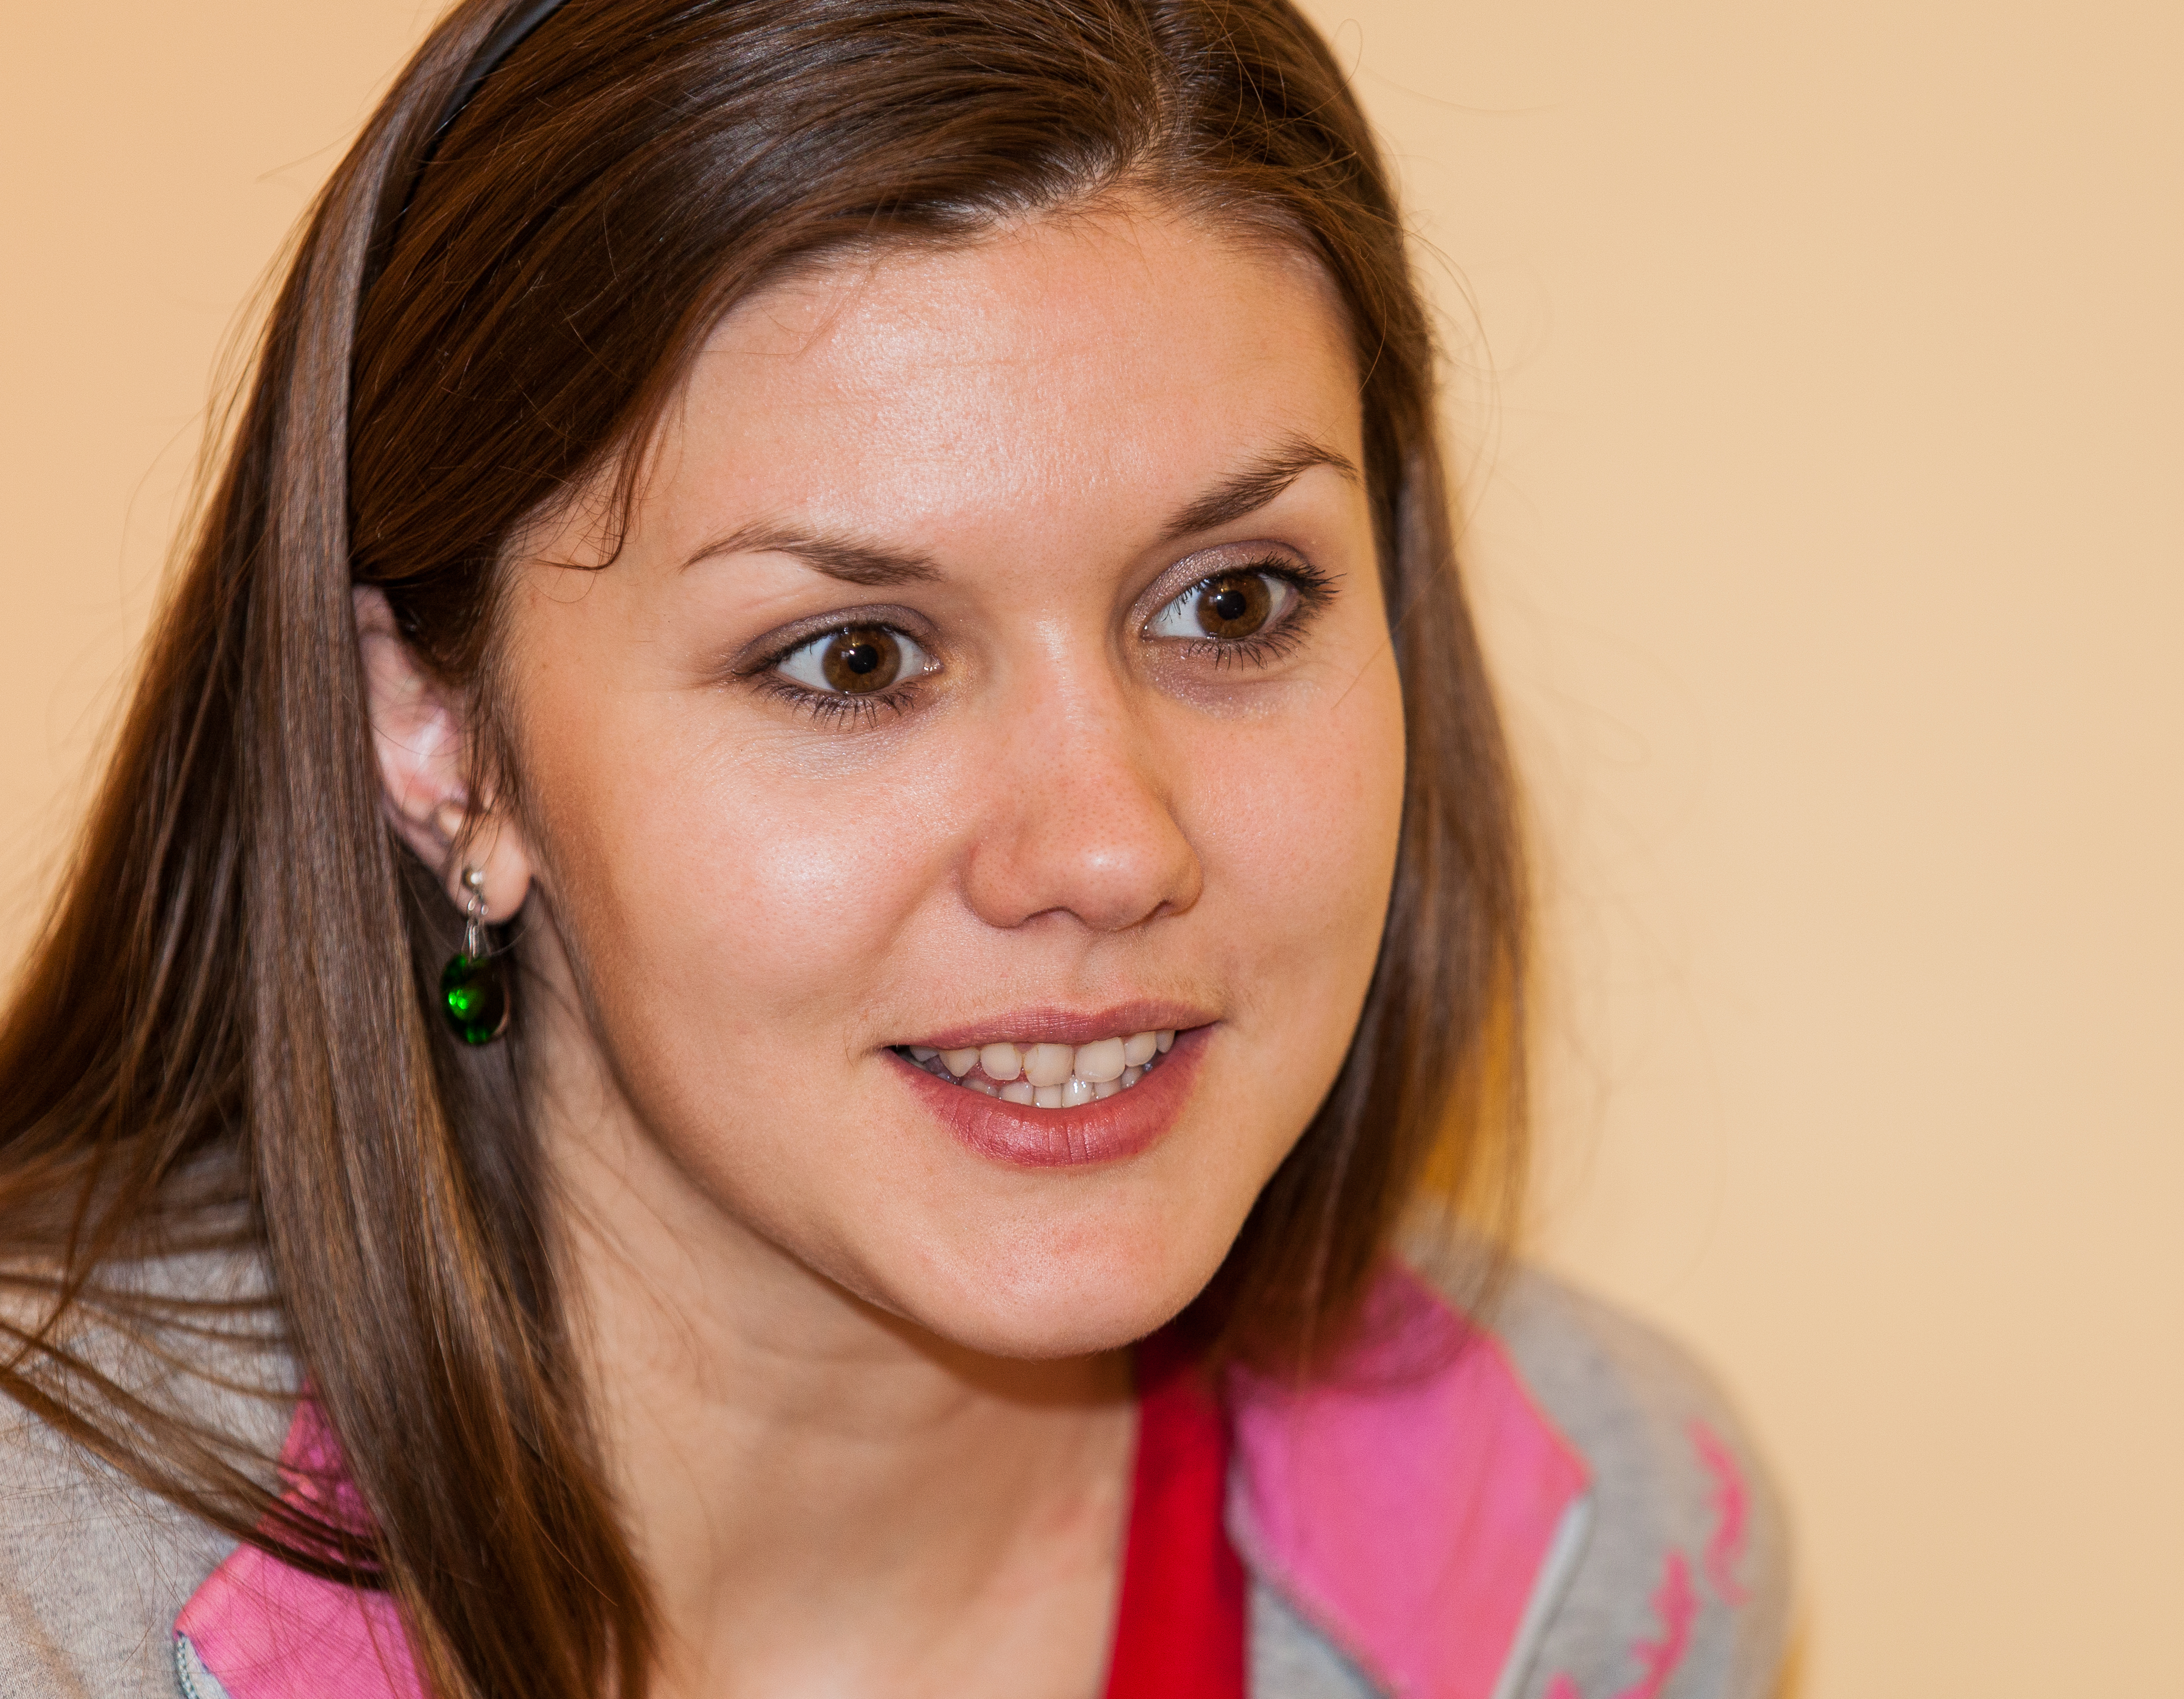 a brunette Catholic young cute woman photographed in April 2014, picture 1/13